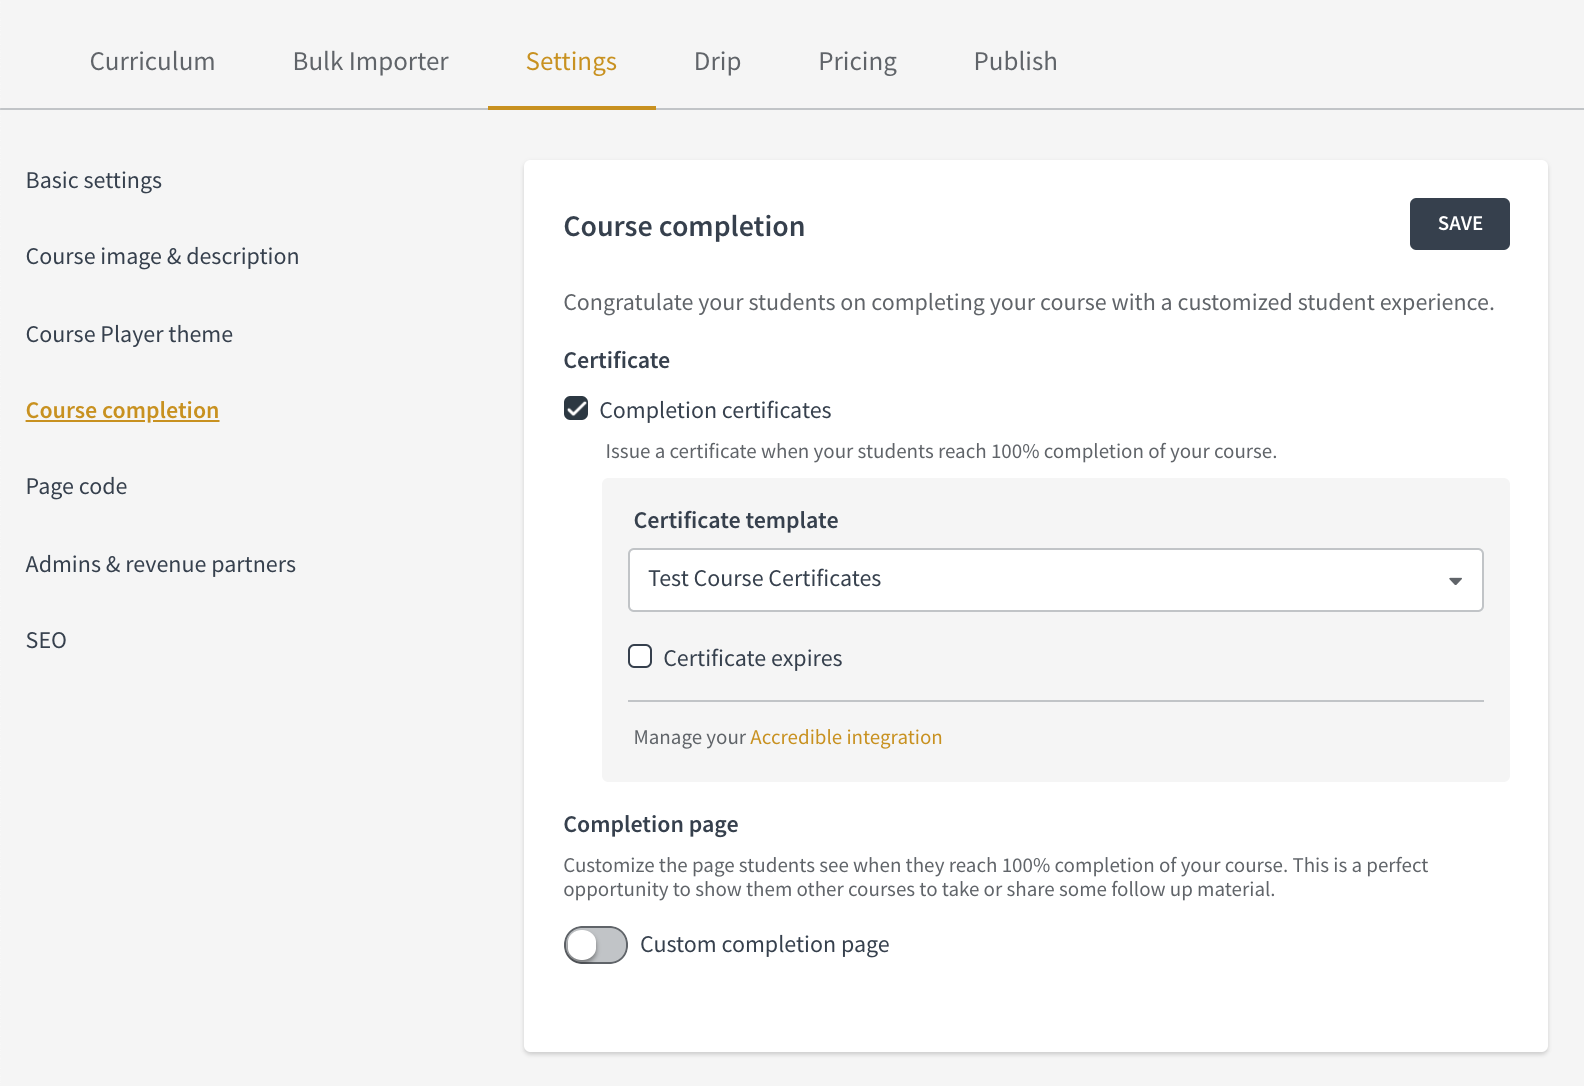 Issue Course Completion Certificates Through Accredible Thinkific